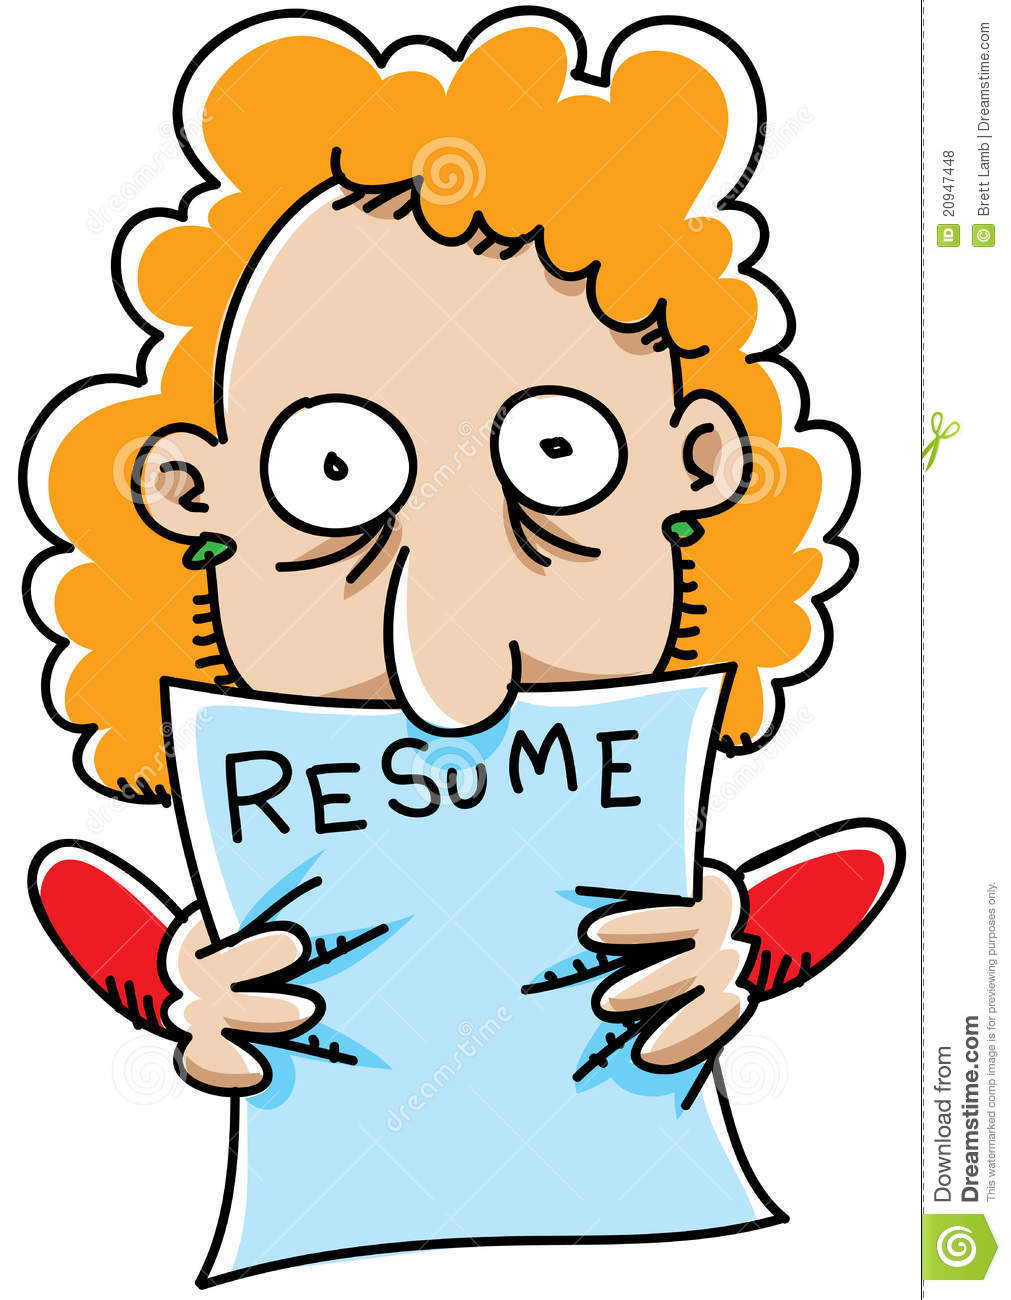 Cartoon Resume Royalty Free Stock Photos - Image: 20947448